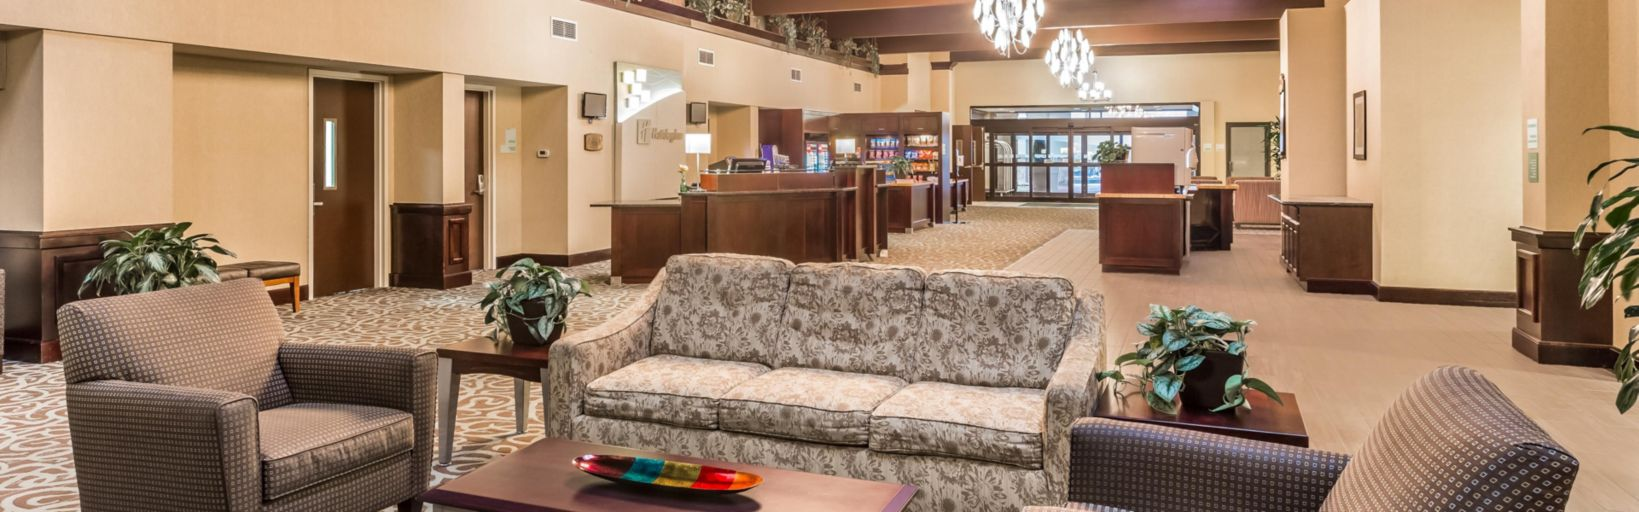 Hotel Lobby Has A Warm Midwest Lodge Feeling